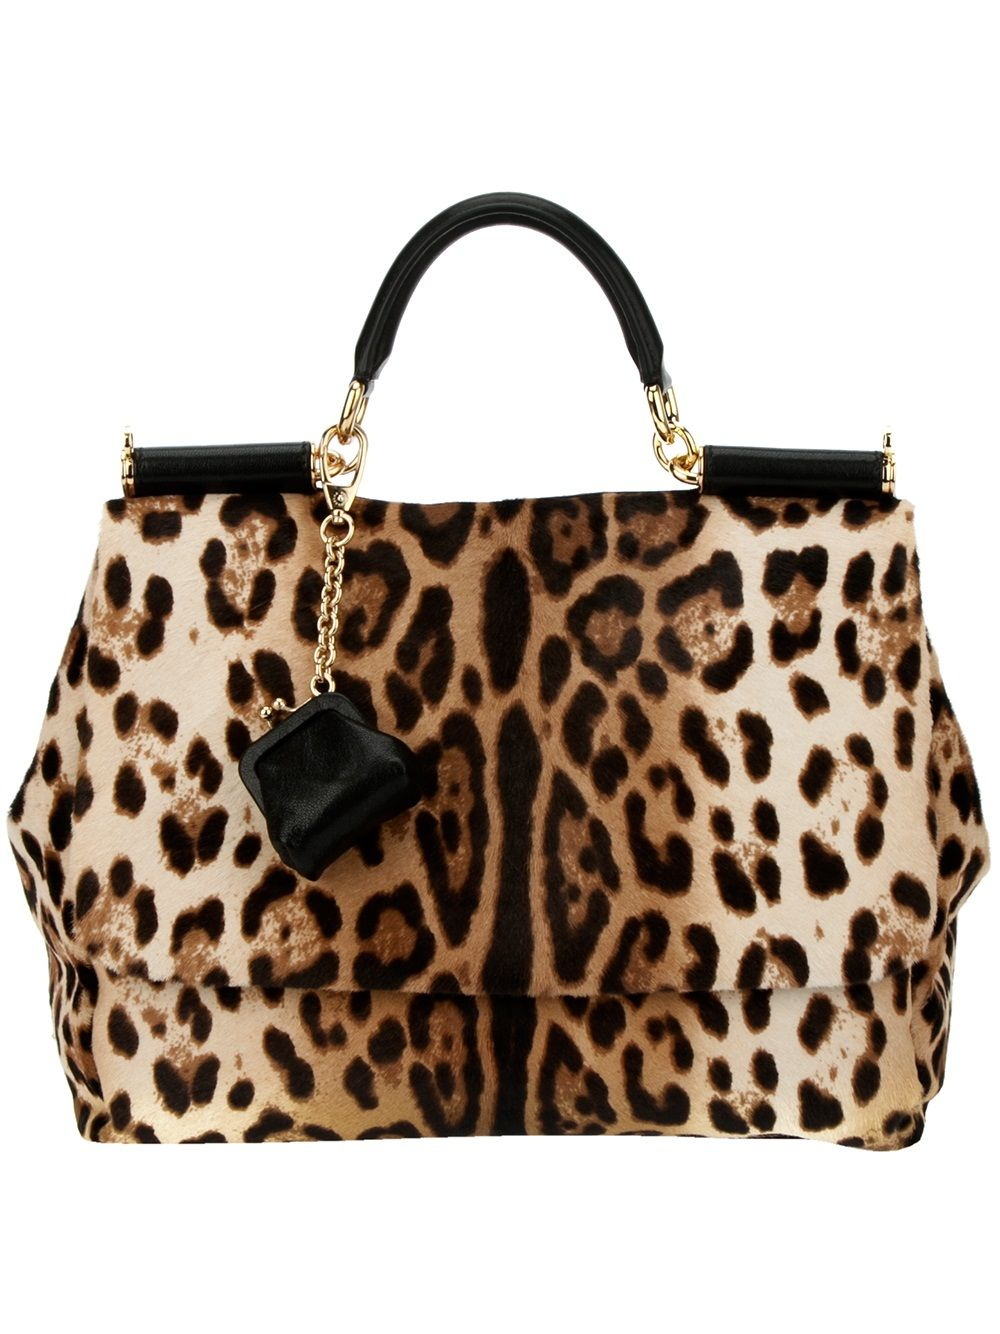 DOLCE   GABBANA Leopard Print Tote ✤HAND me.the BAG✤ bd1bb3f50c450